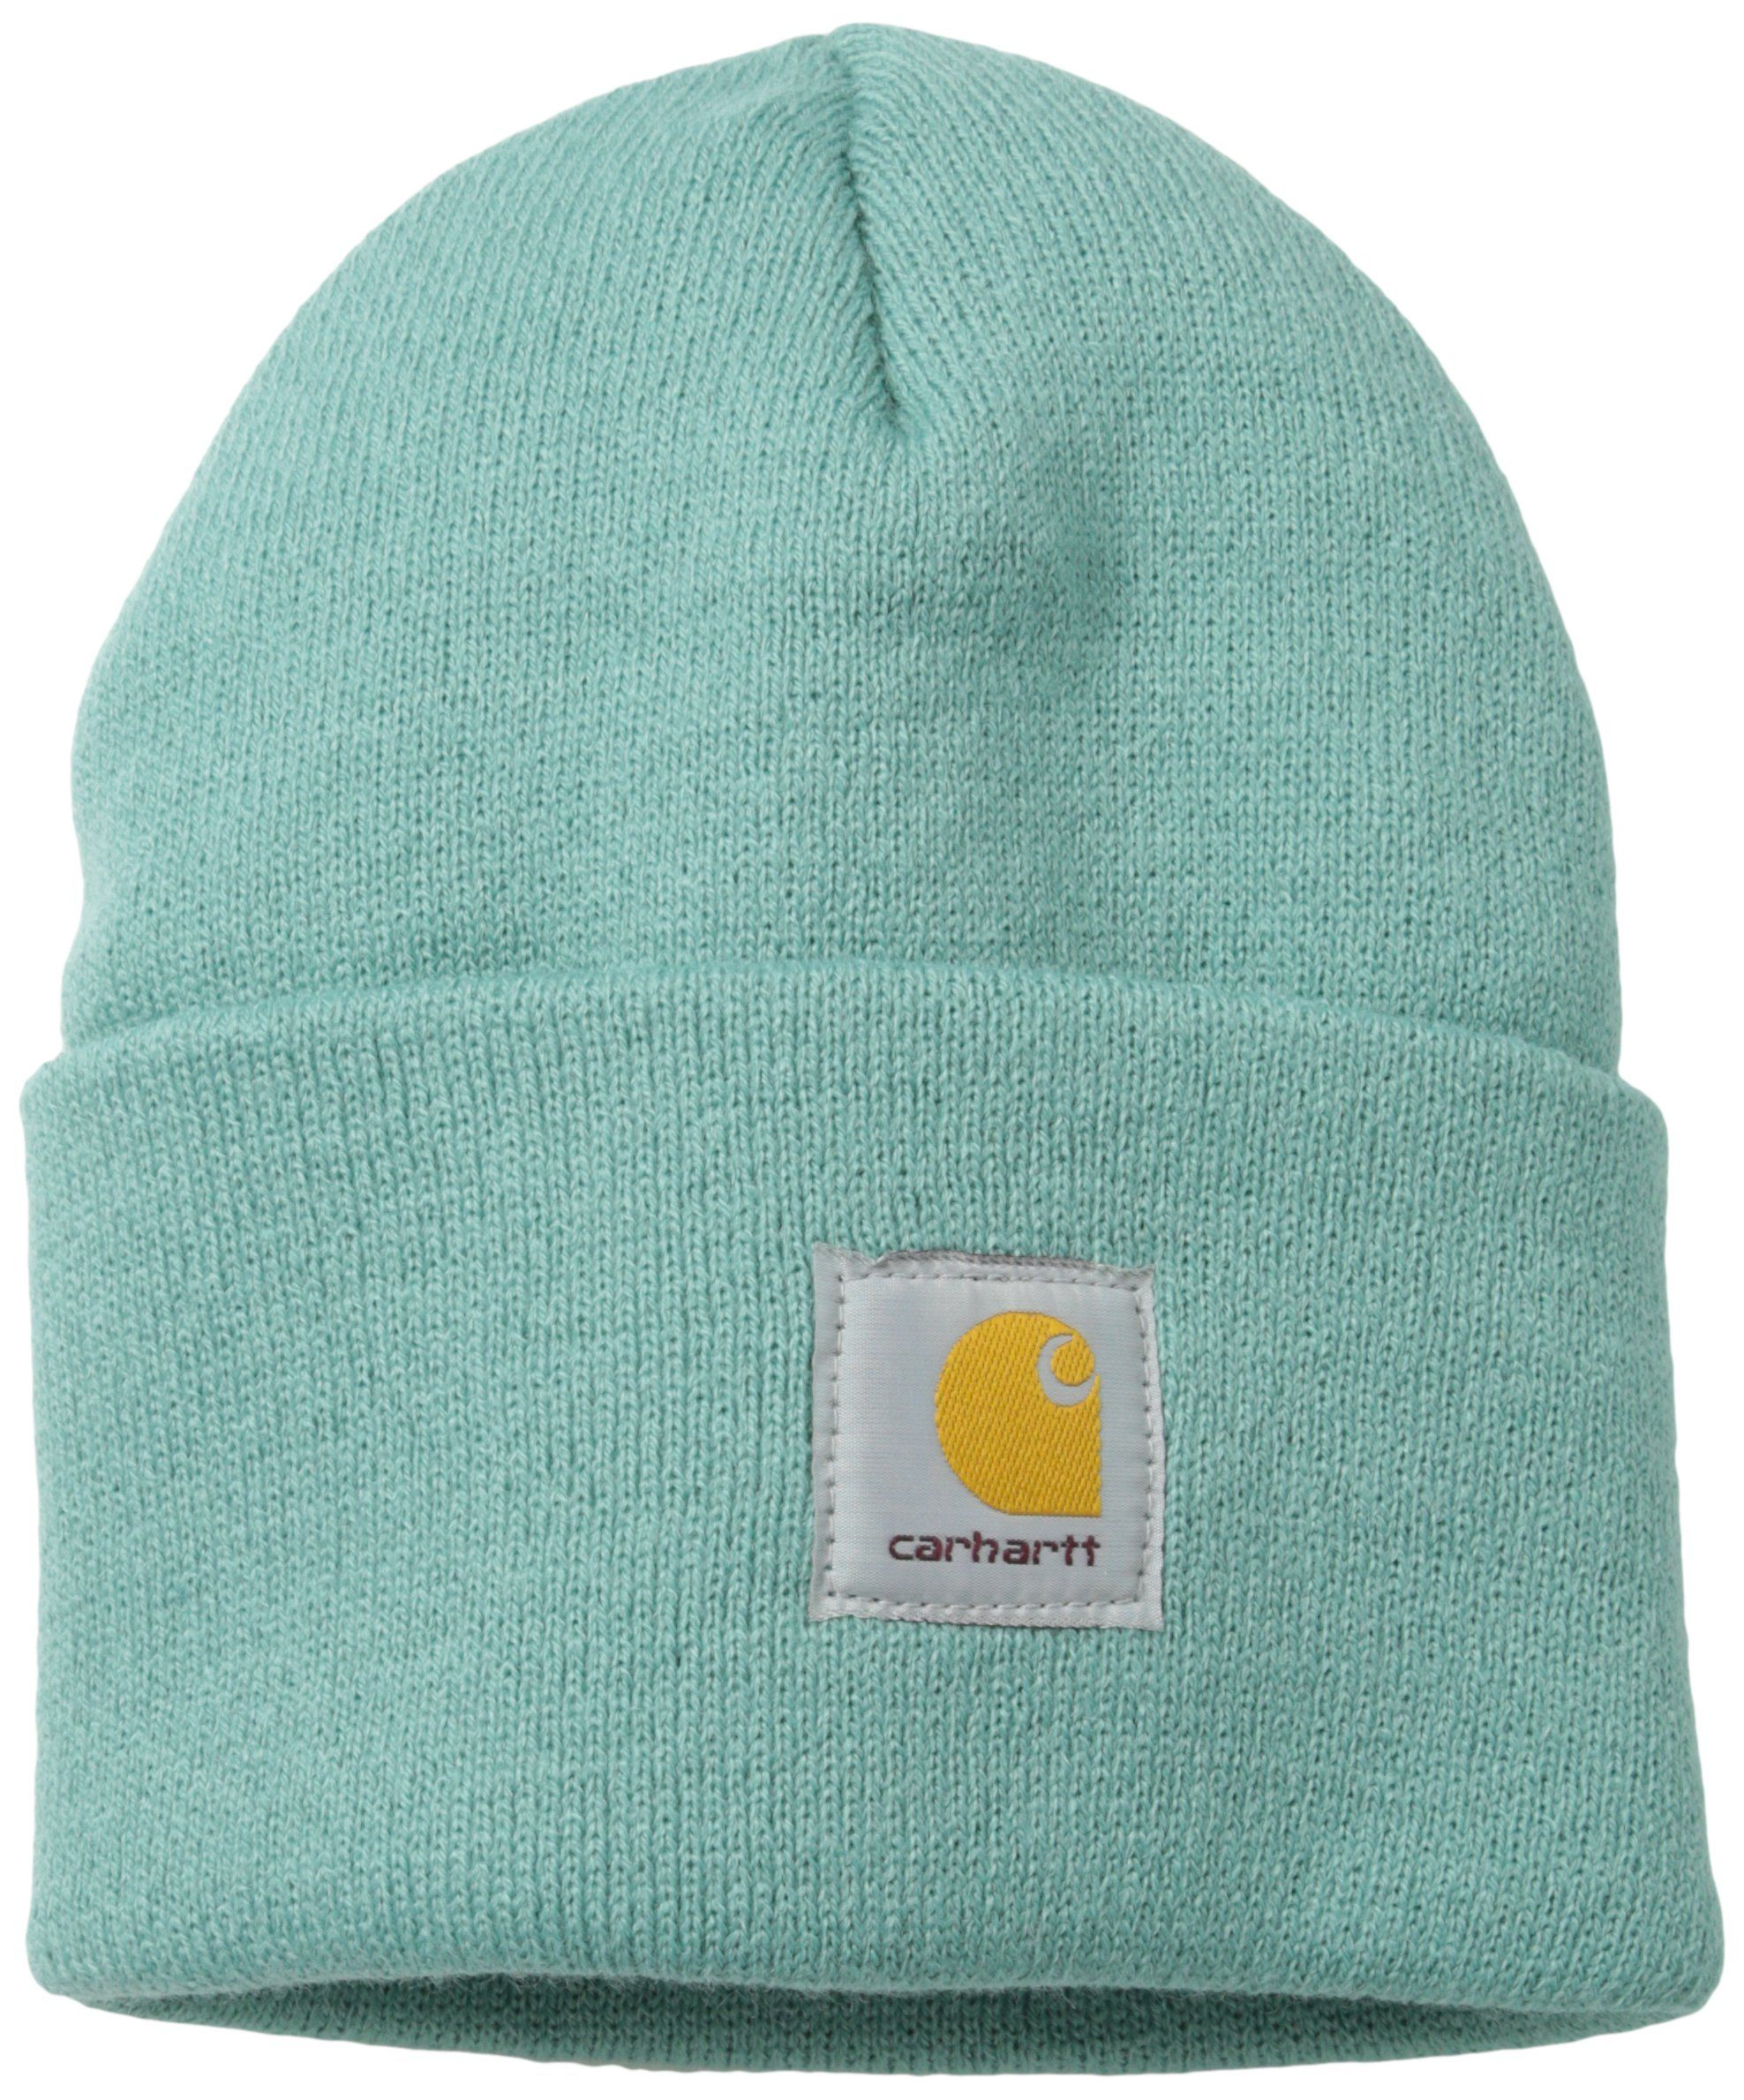 4f9a1cf1b95 Amazon.com  Carhartt Women s Knit Beanie Hat